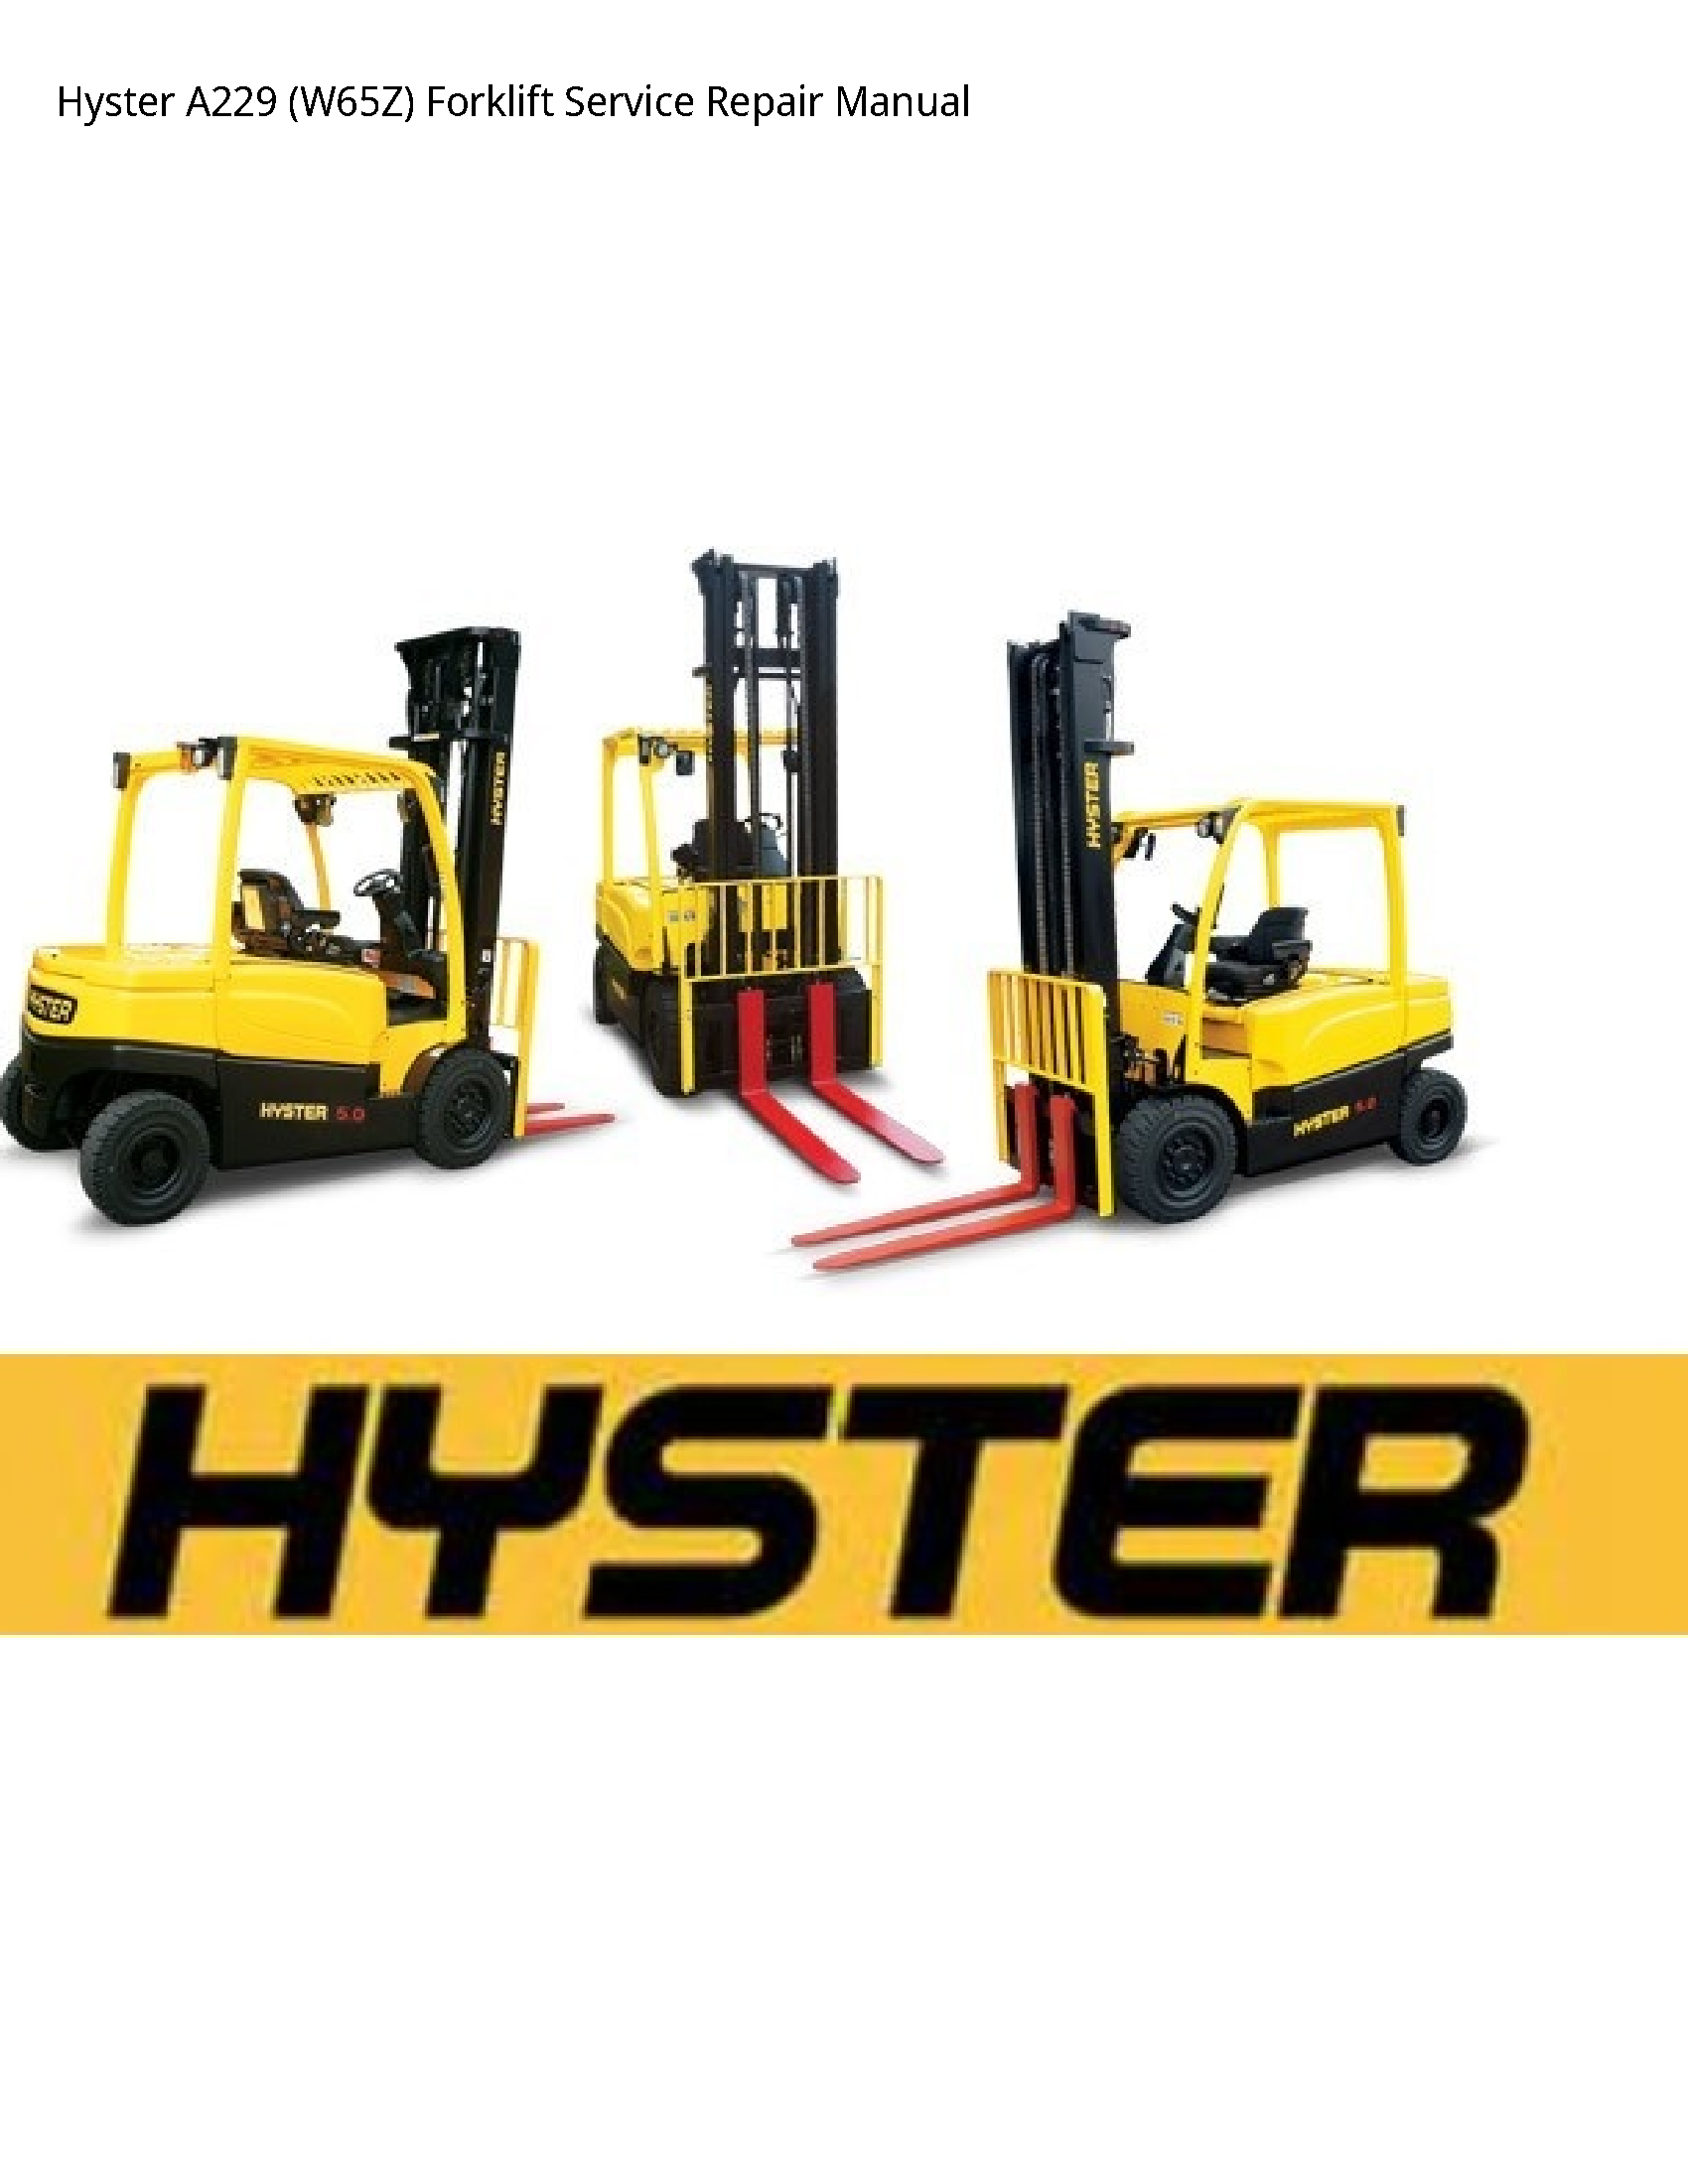 Hyster A229 Forklift manual